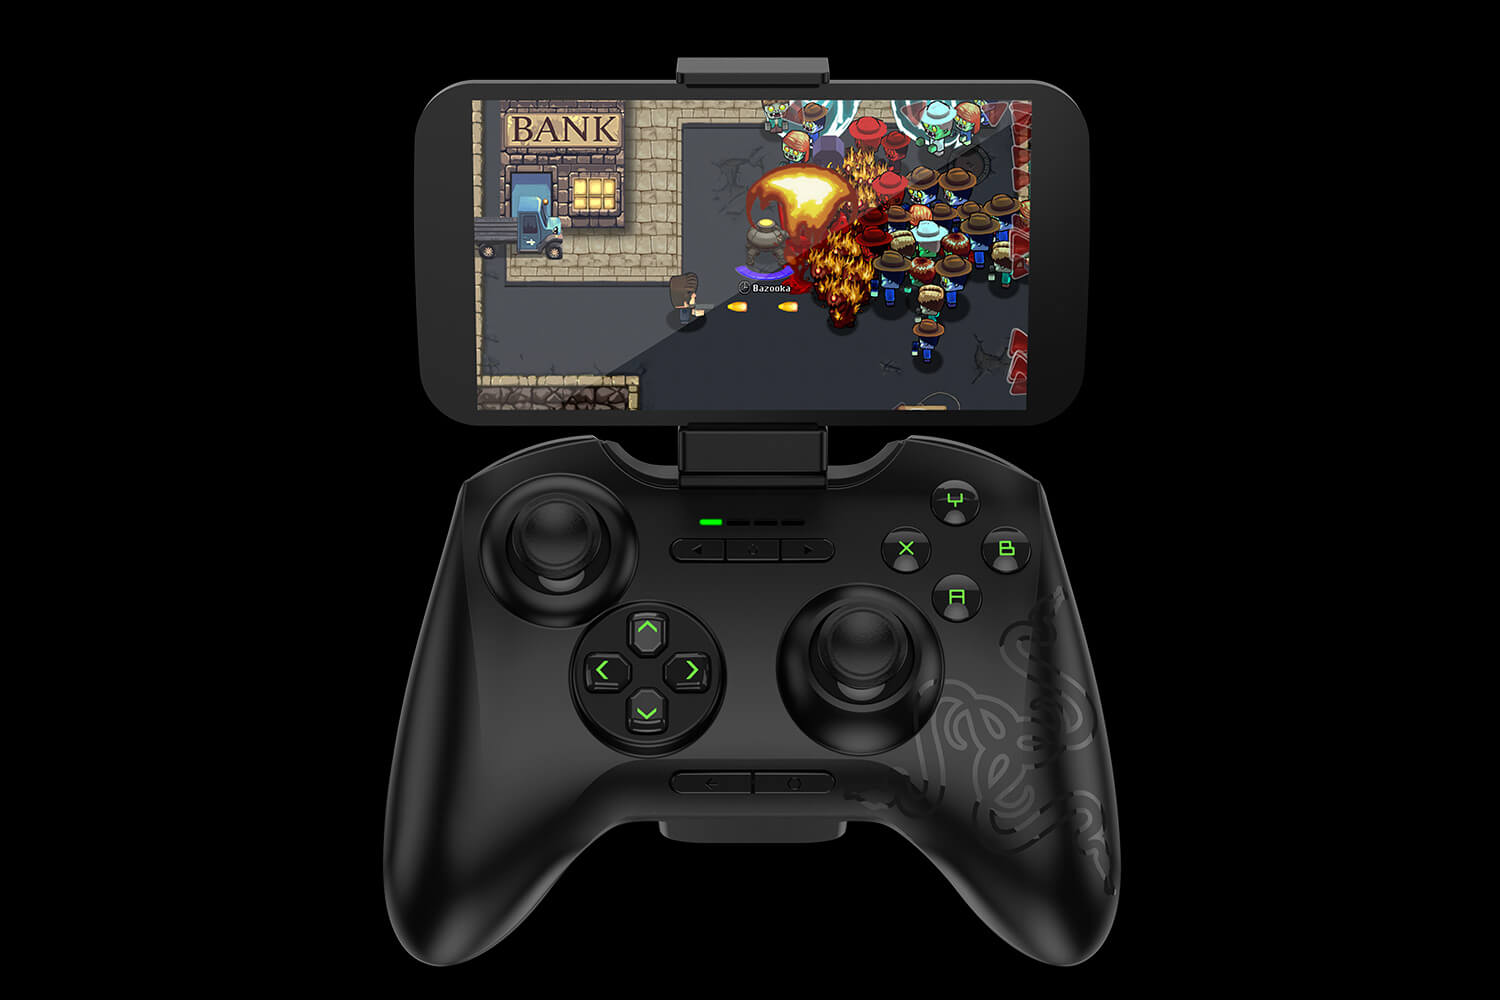 Best Mobile Gamepad For Android To Buy Gadgetmeasure Joystick Double Game Pad Transparant Wellcome Razar Serval With Holder